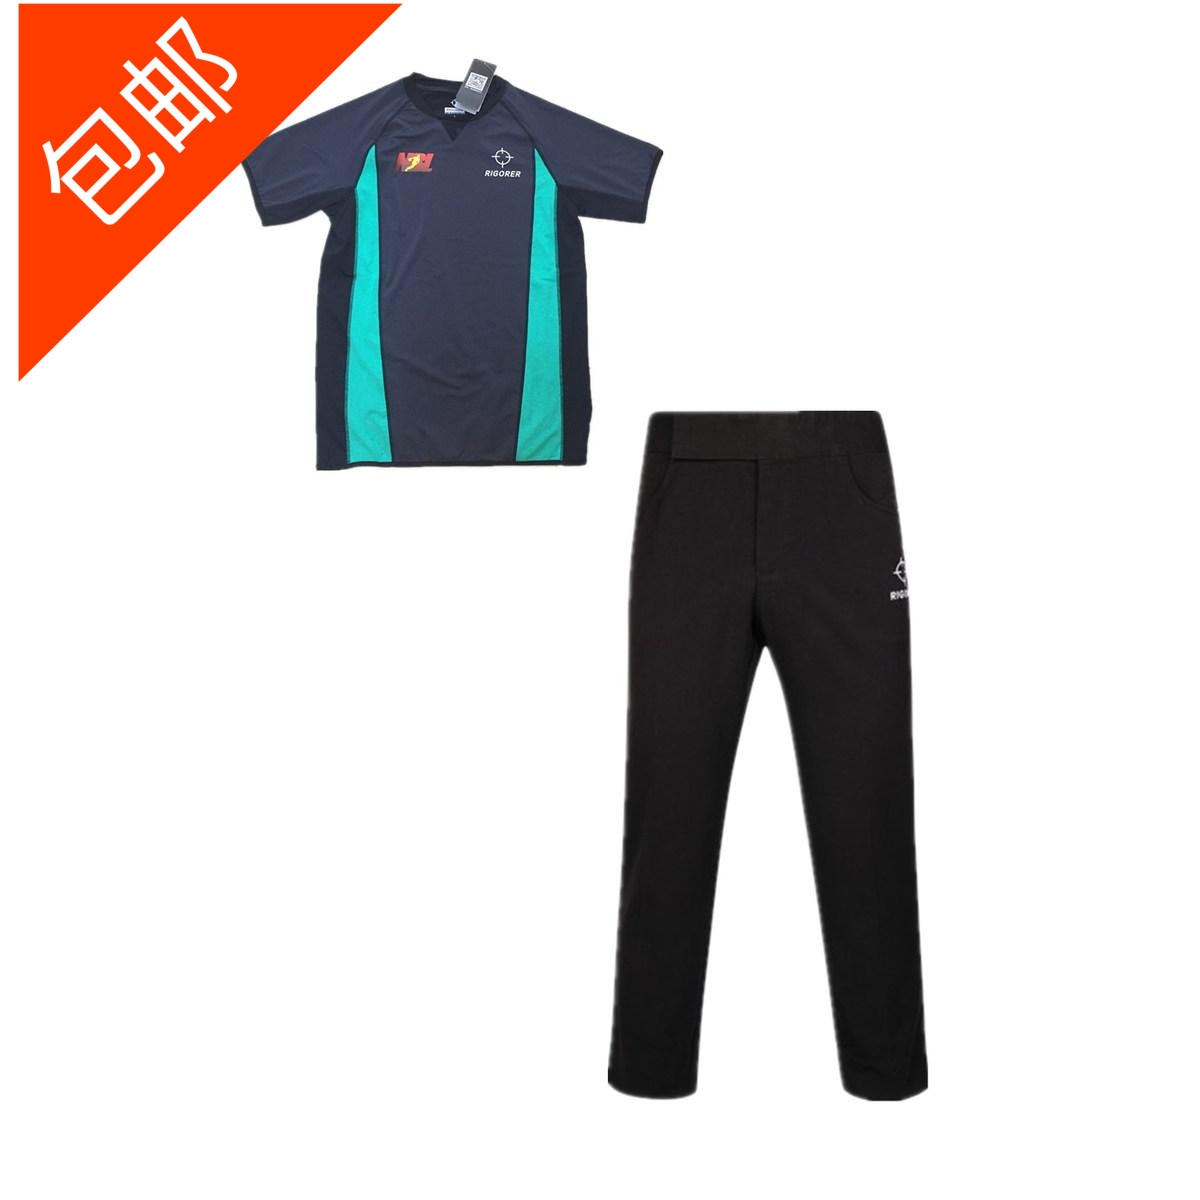 546baee50d80 Prospective basketball referee suit with basketball referee pants  sponsorship NBL referee service